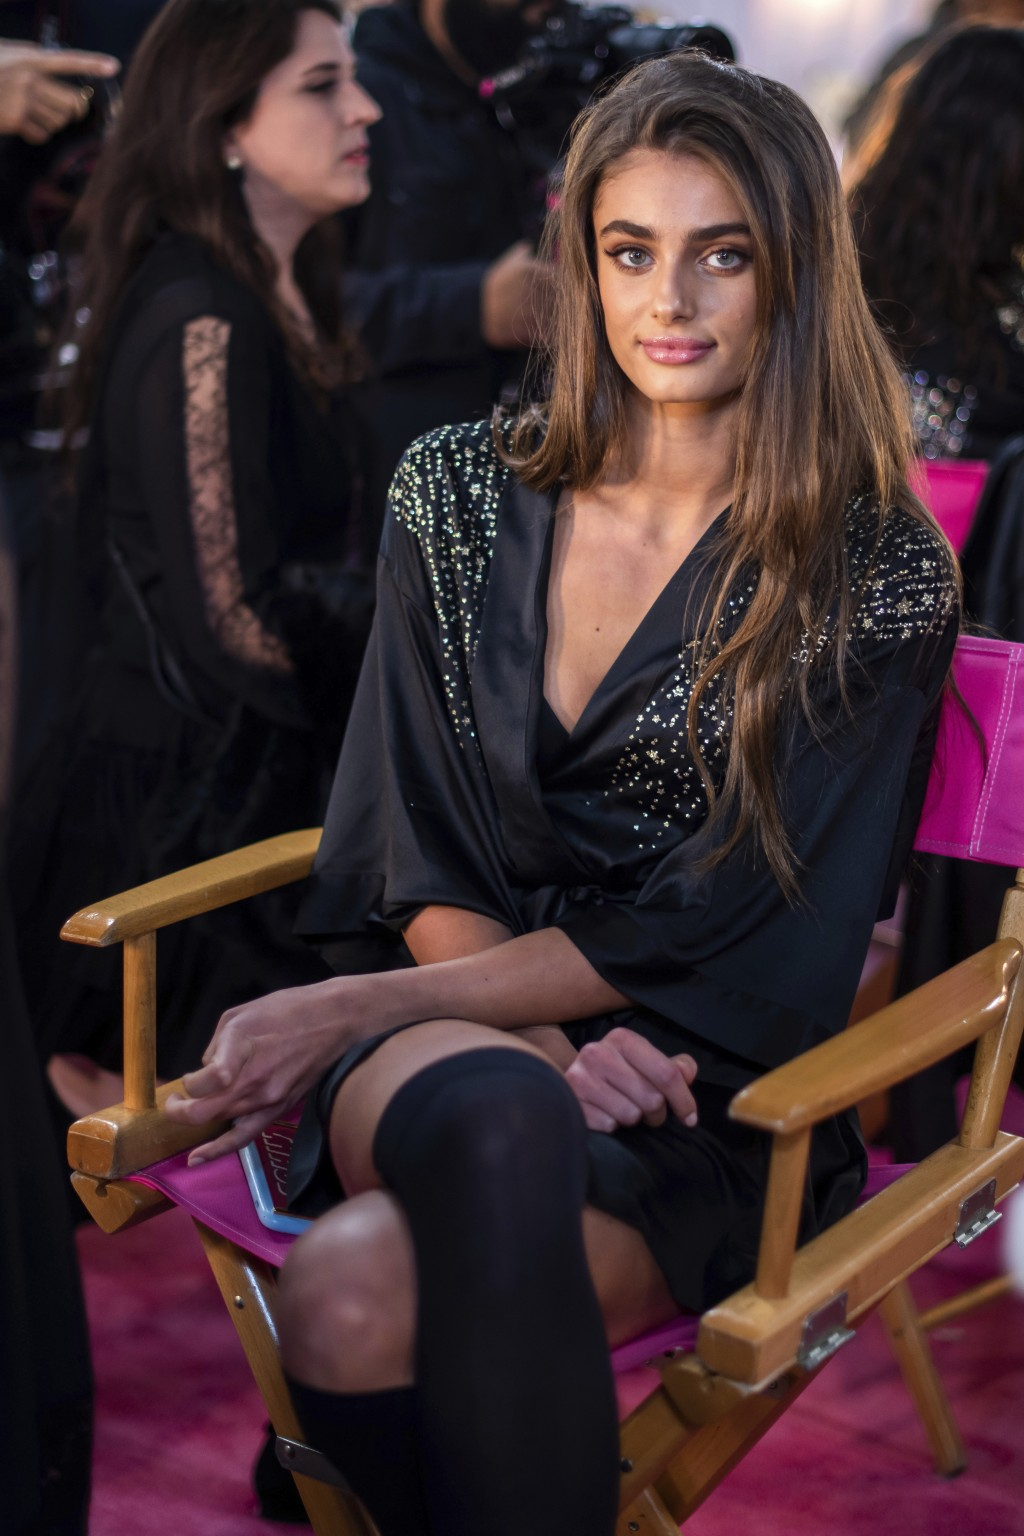 Taylor Hill appears backstage during hair and makeup at the 2018 Victoria's Secret Fashion Show at Pier 94 on Thursday, Nov. 8, 2018, in New York. (Ph